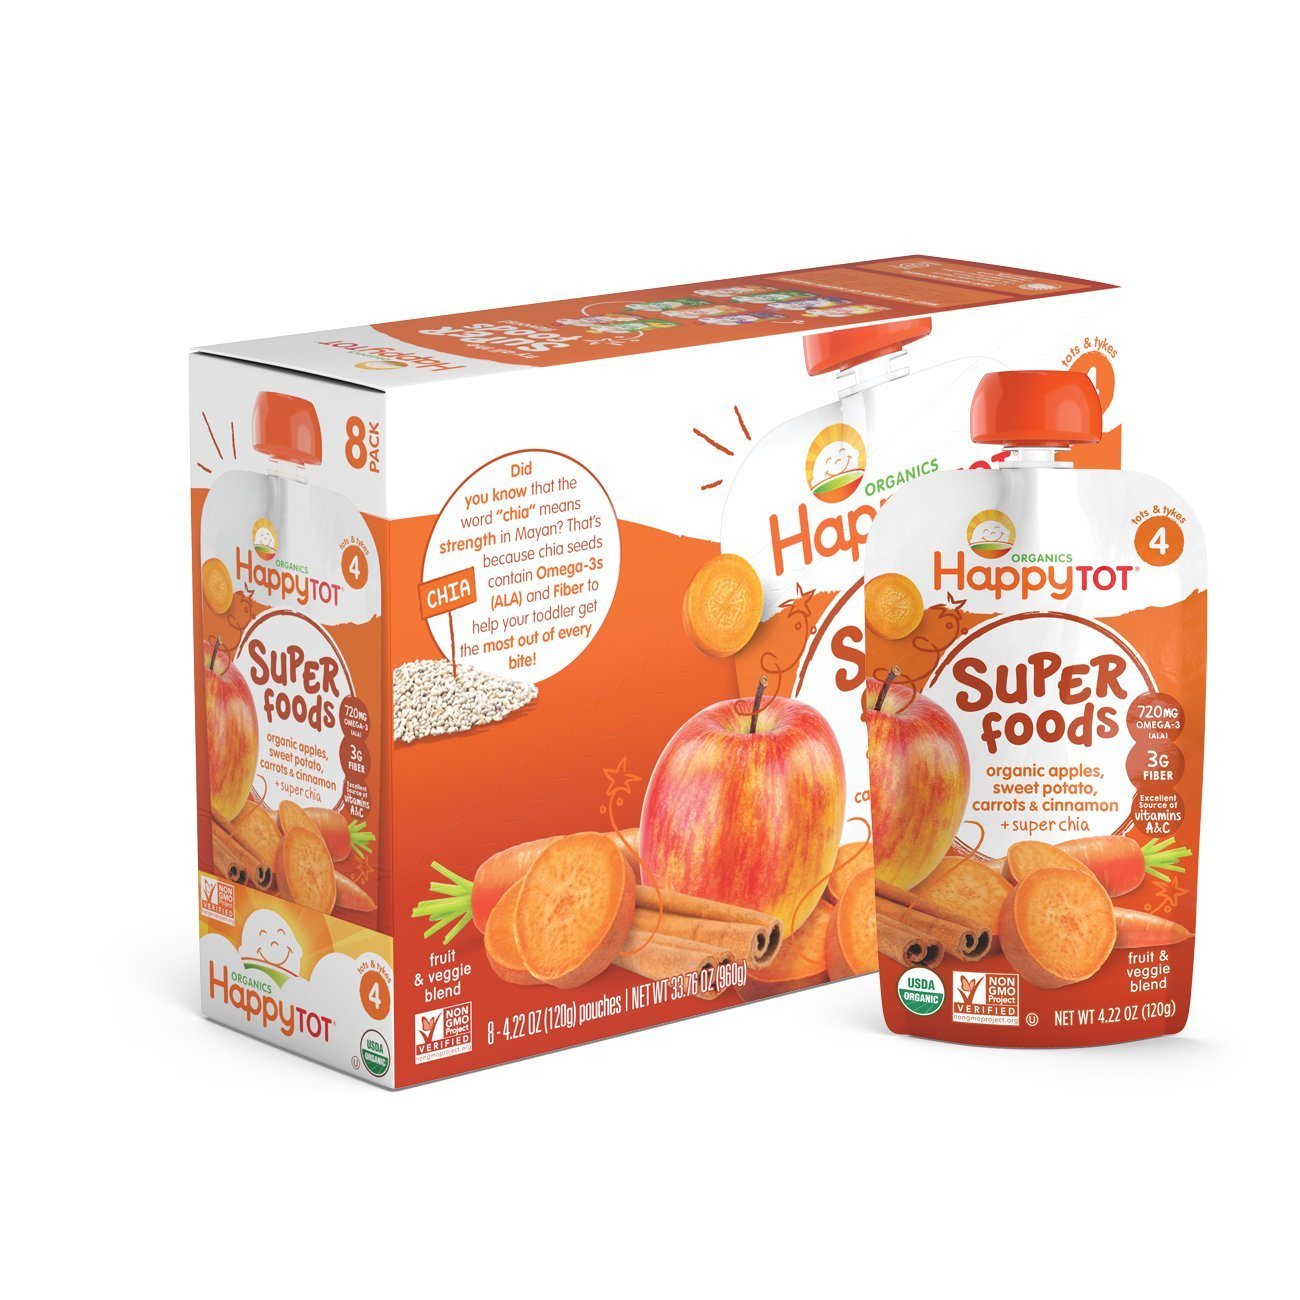 Happy Tot Organic Stage 4 Super Foods Apples Sweet Potatoes Carrots & Cinnamon + Super Chia 4.22 Ounce (Pack of 16), Non-GMO, Gluten Free, 3g of Fiber, Excellent source of vitamins A & C